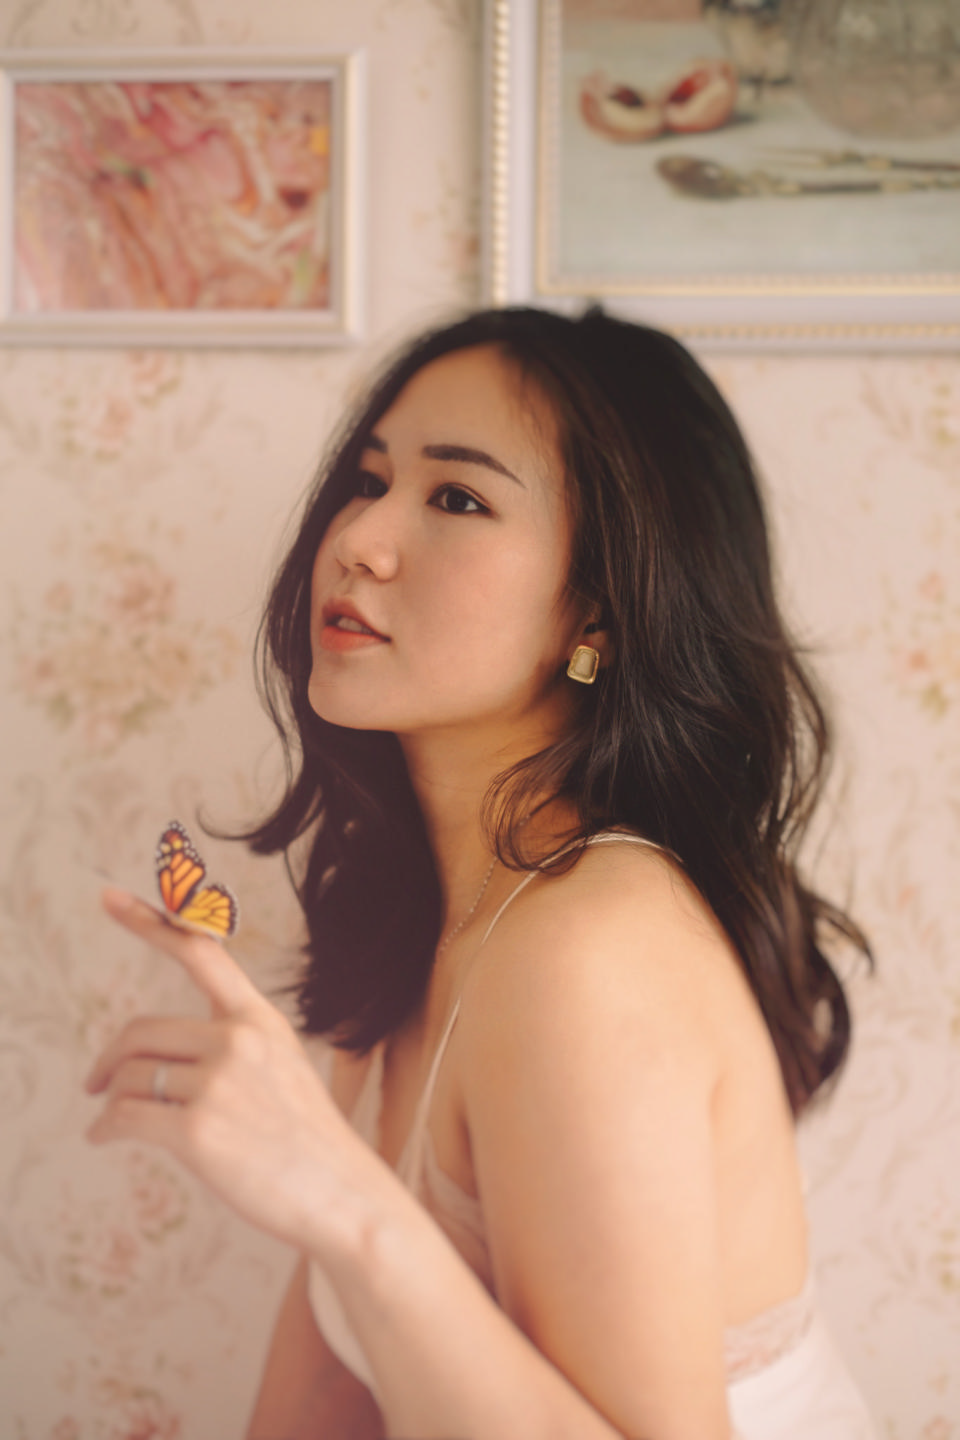 indoor portrait of a beautiful Asian woman